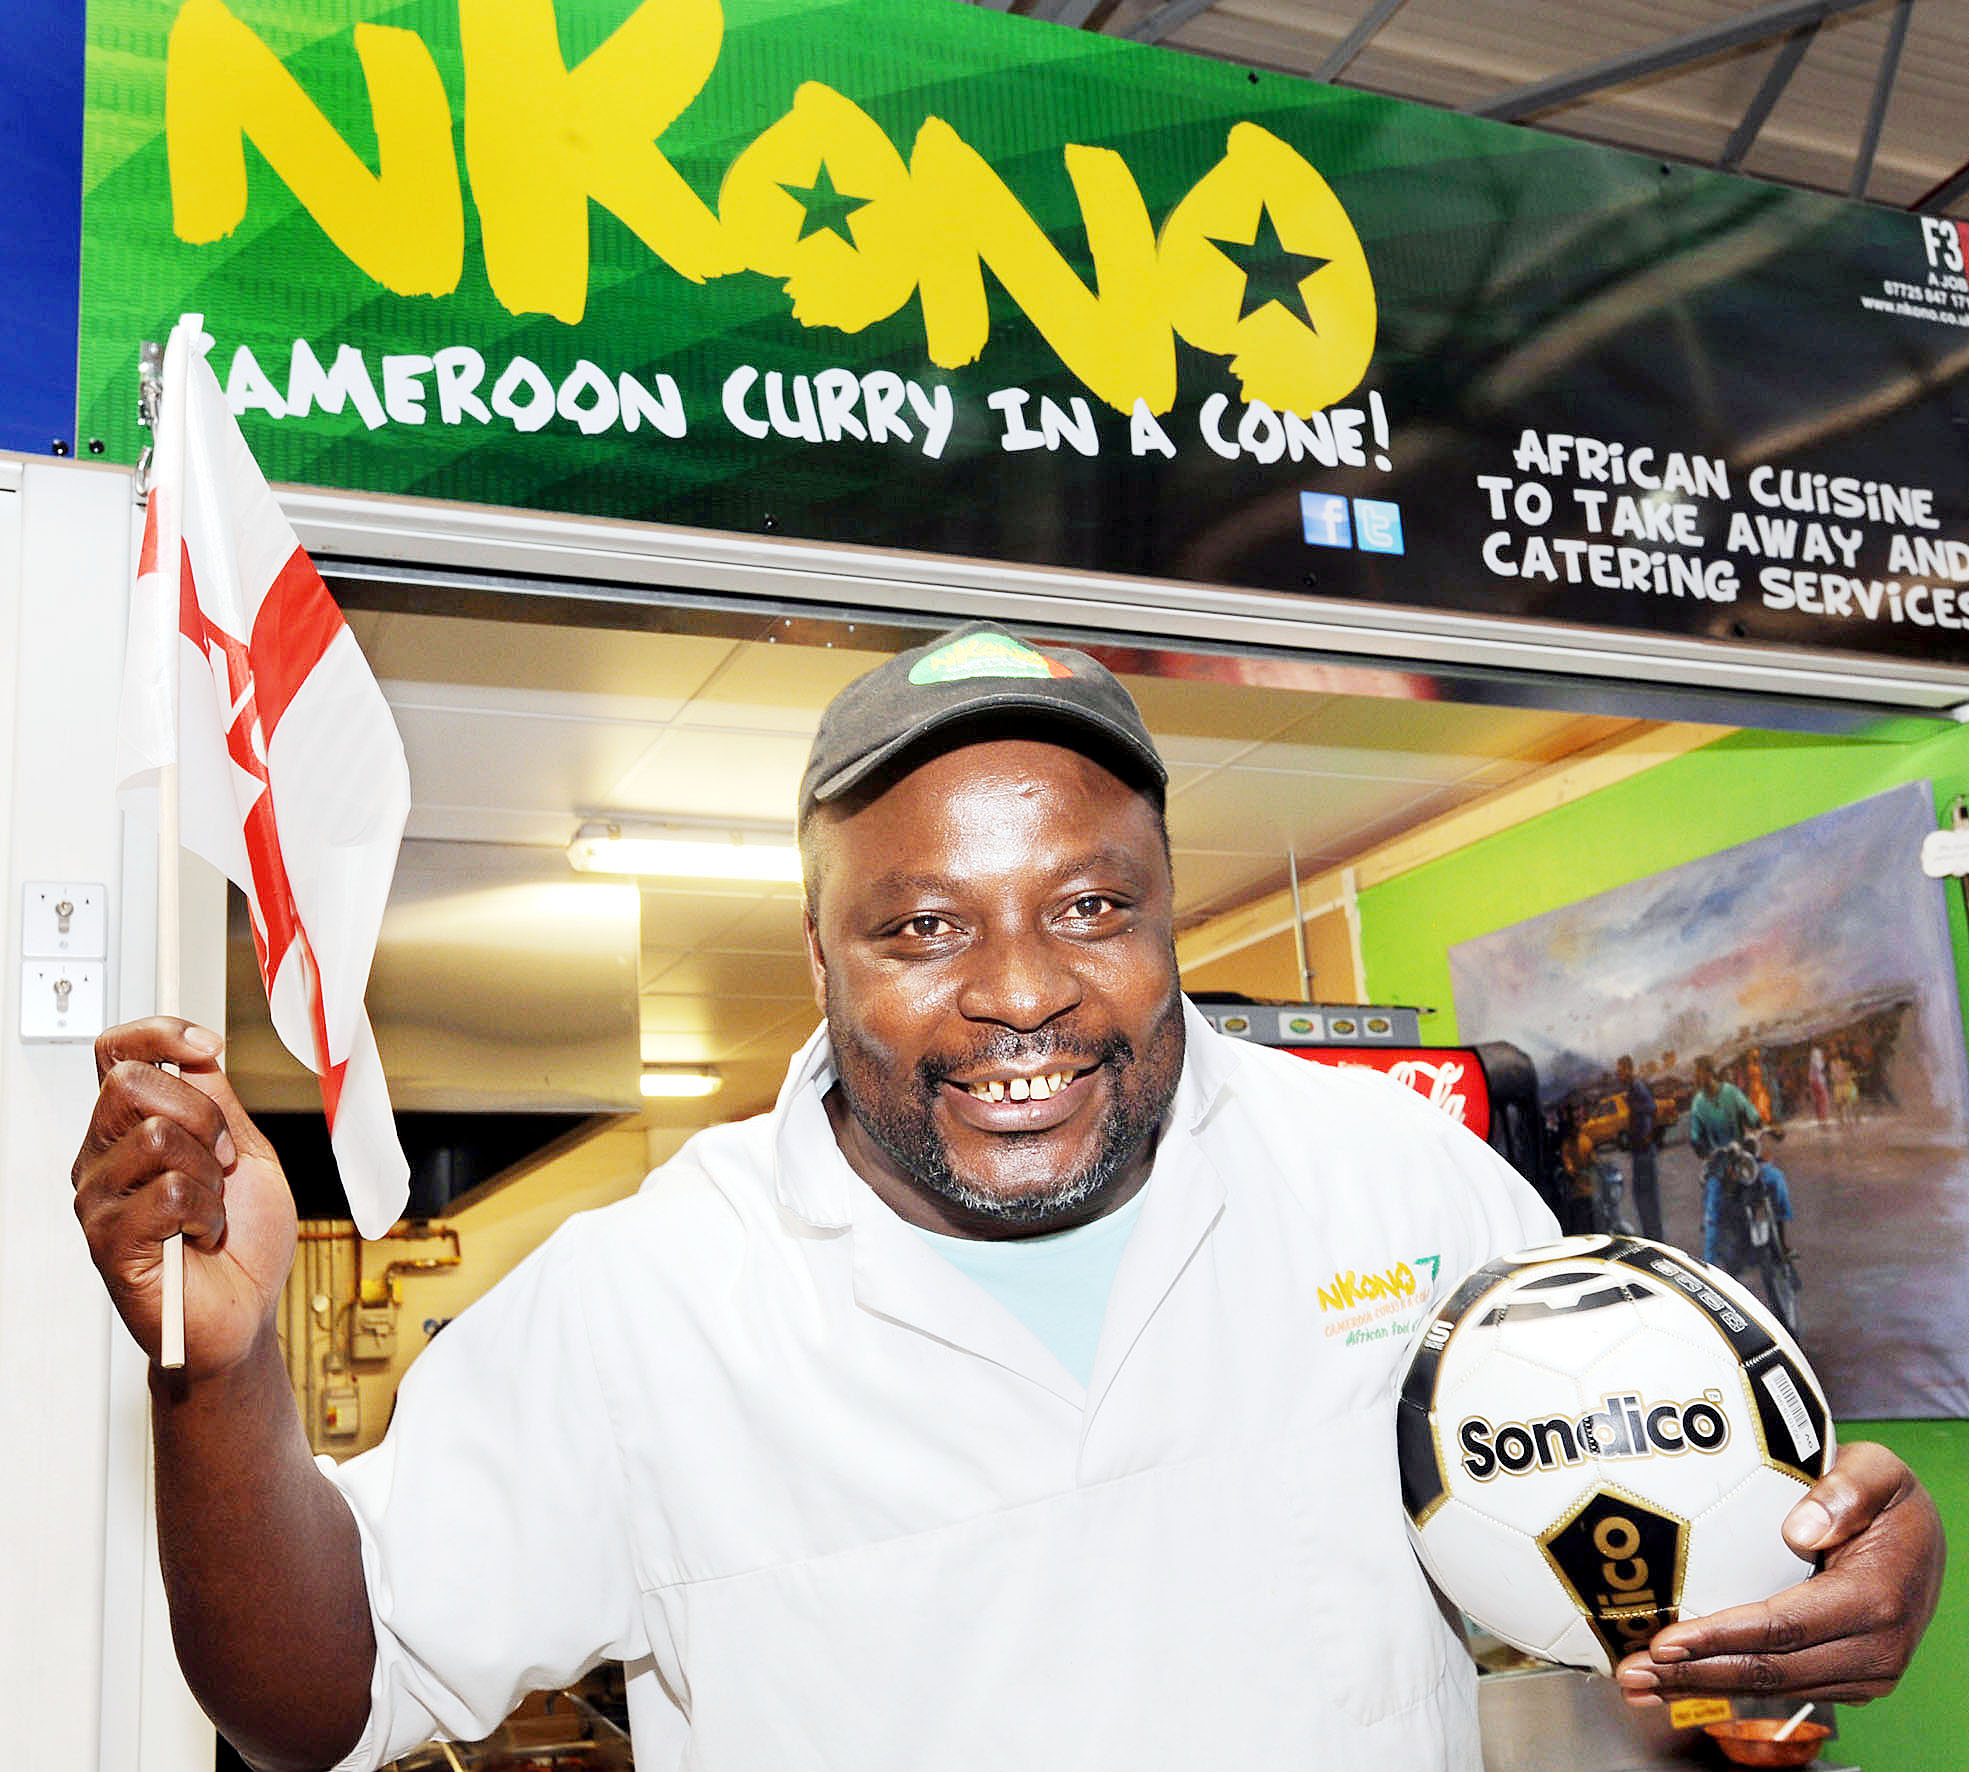 Alain Job from African curry stall Nkono in Bolton Market